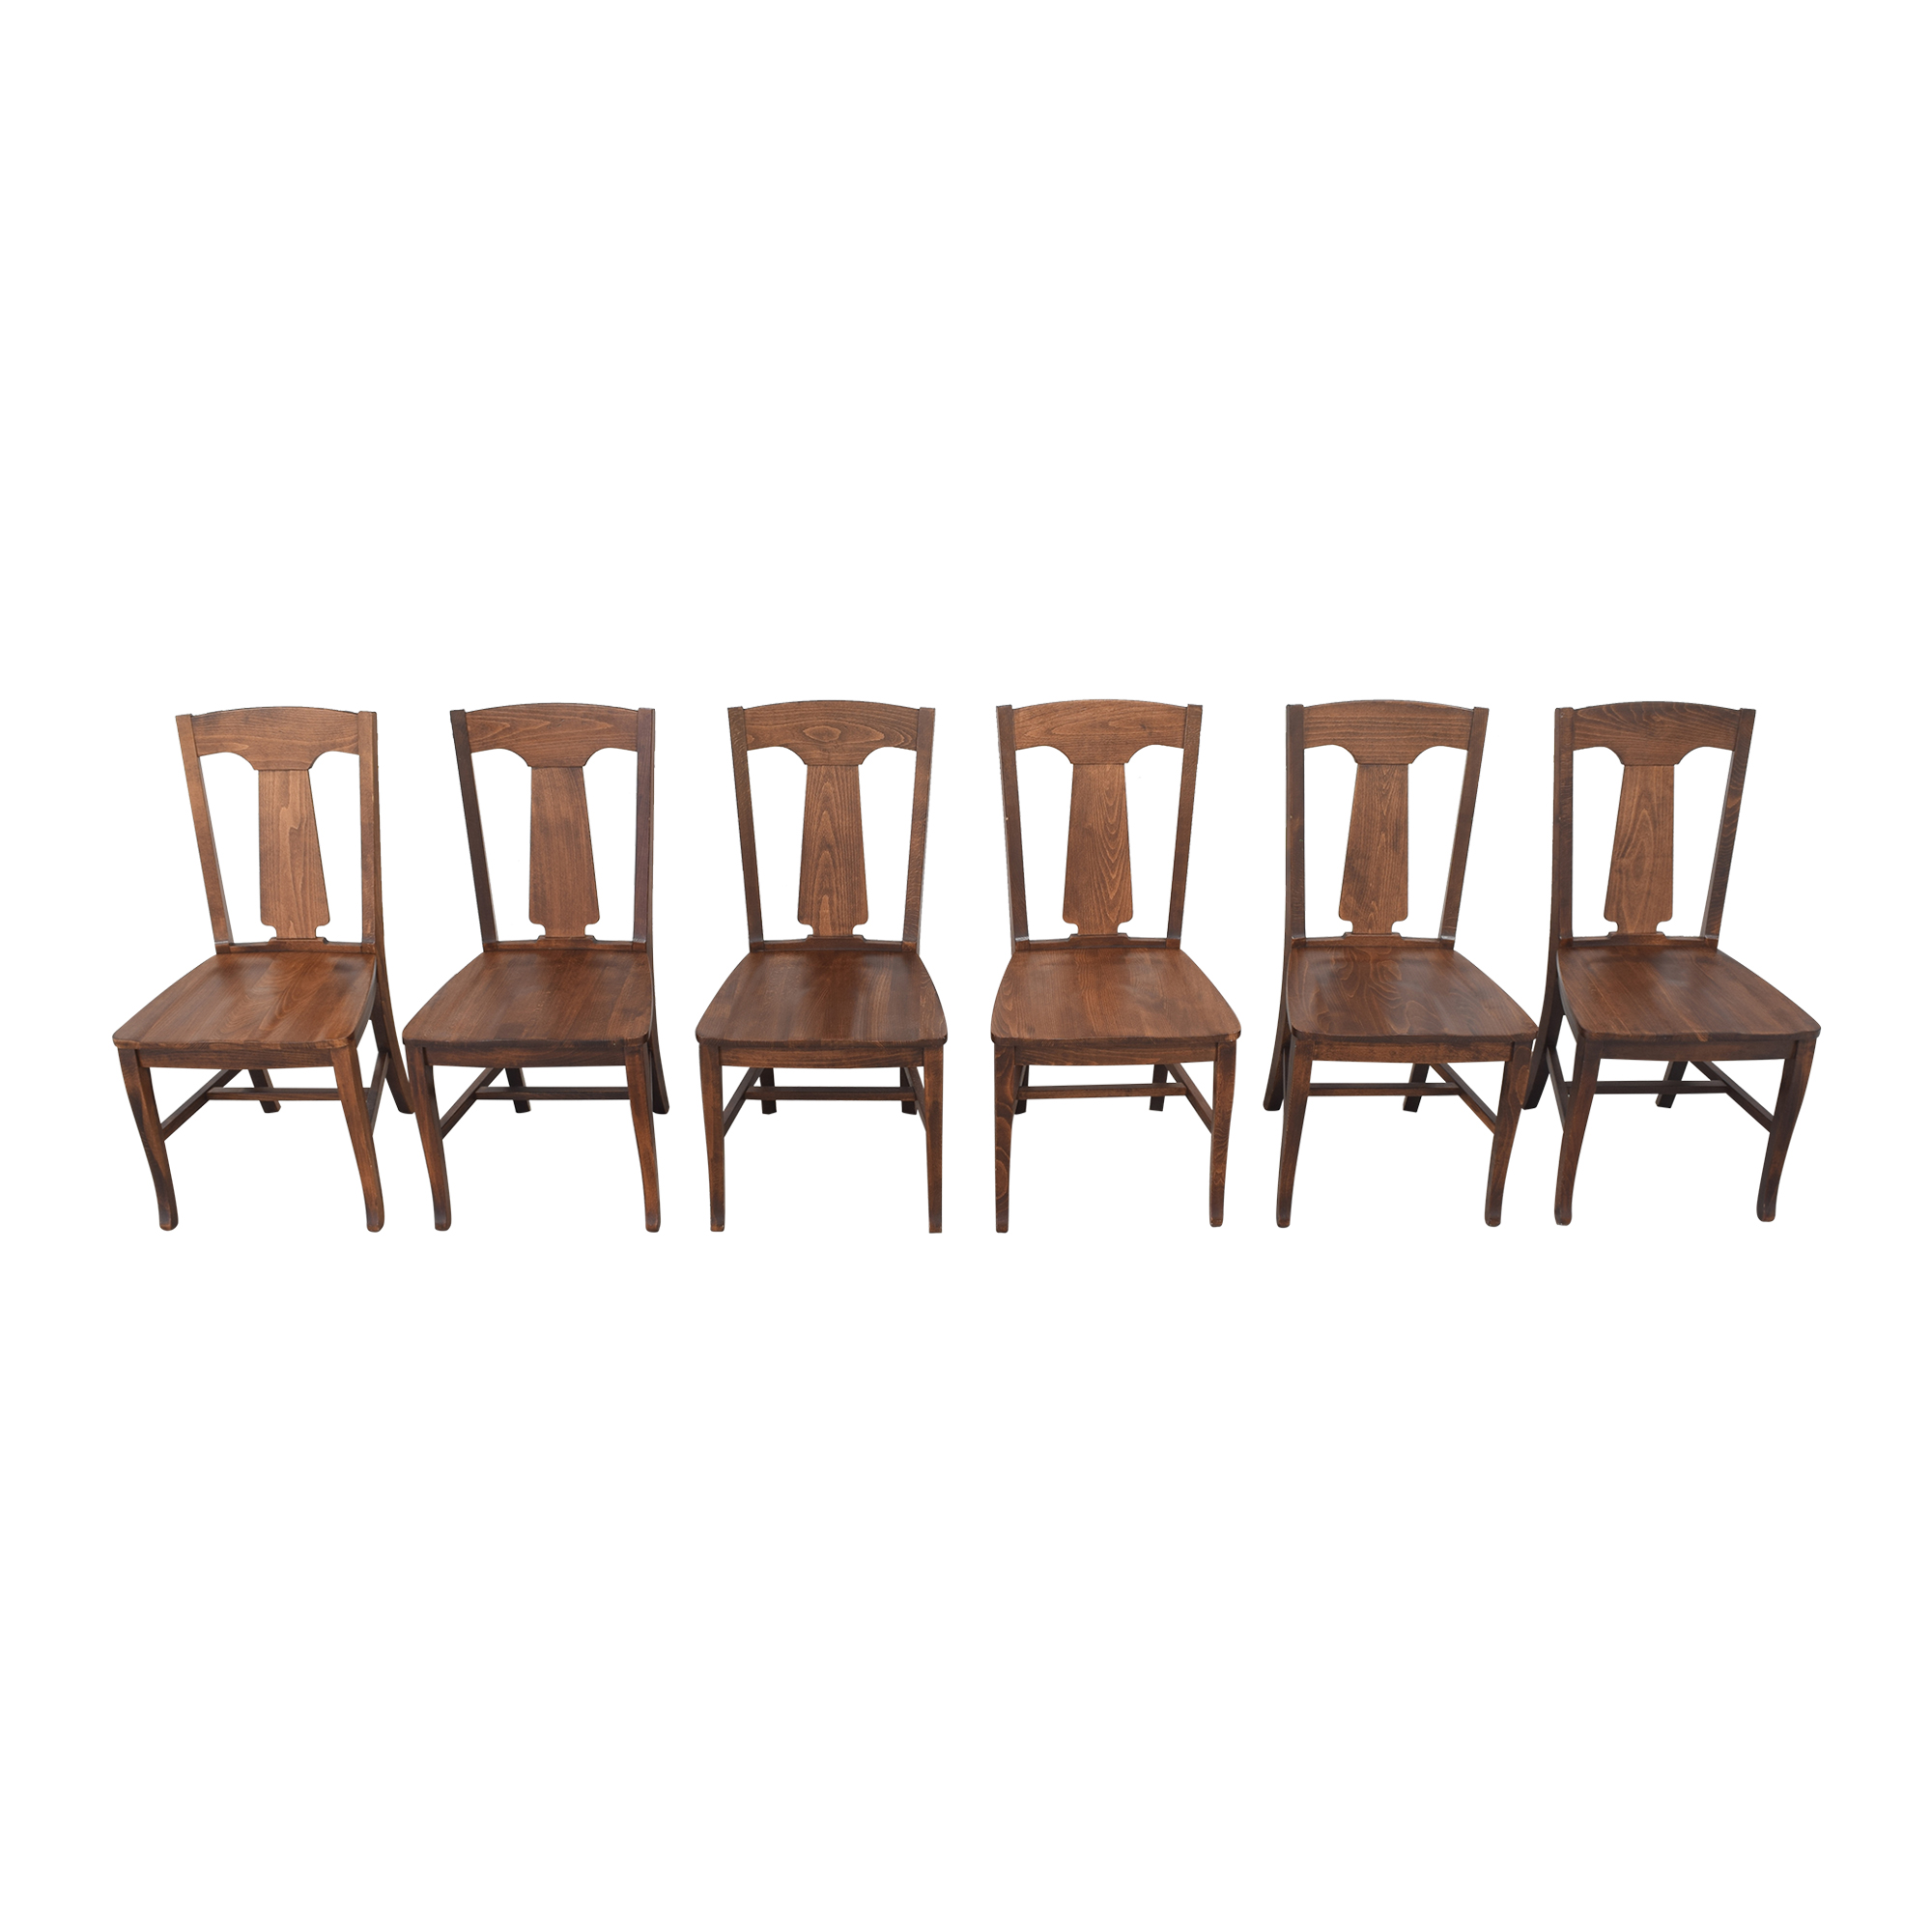 Pottery Barn Pottery Barn Loren Dining Side Chairs Brown